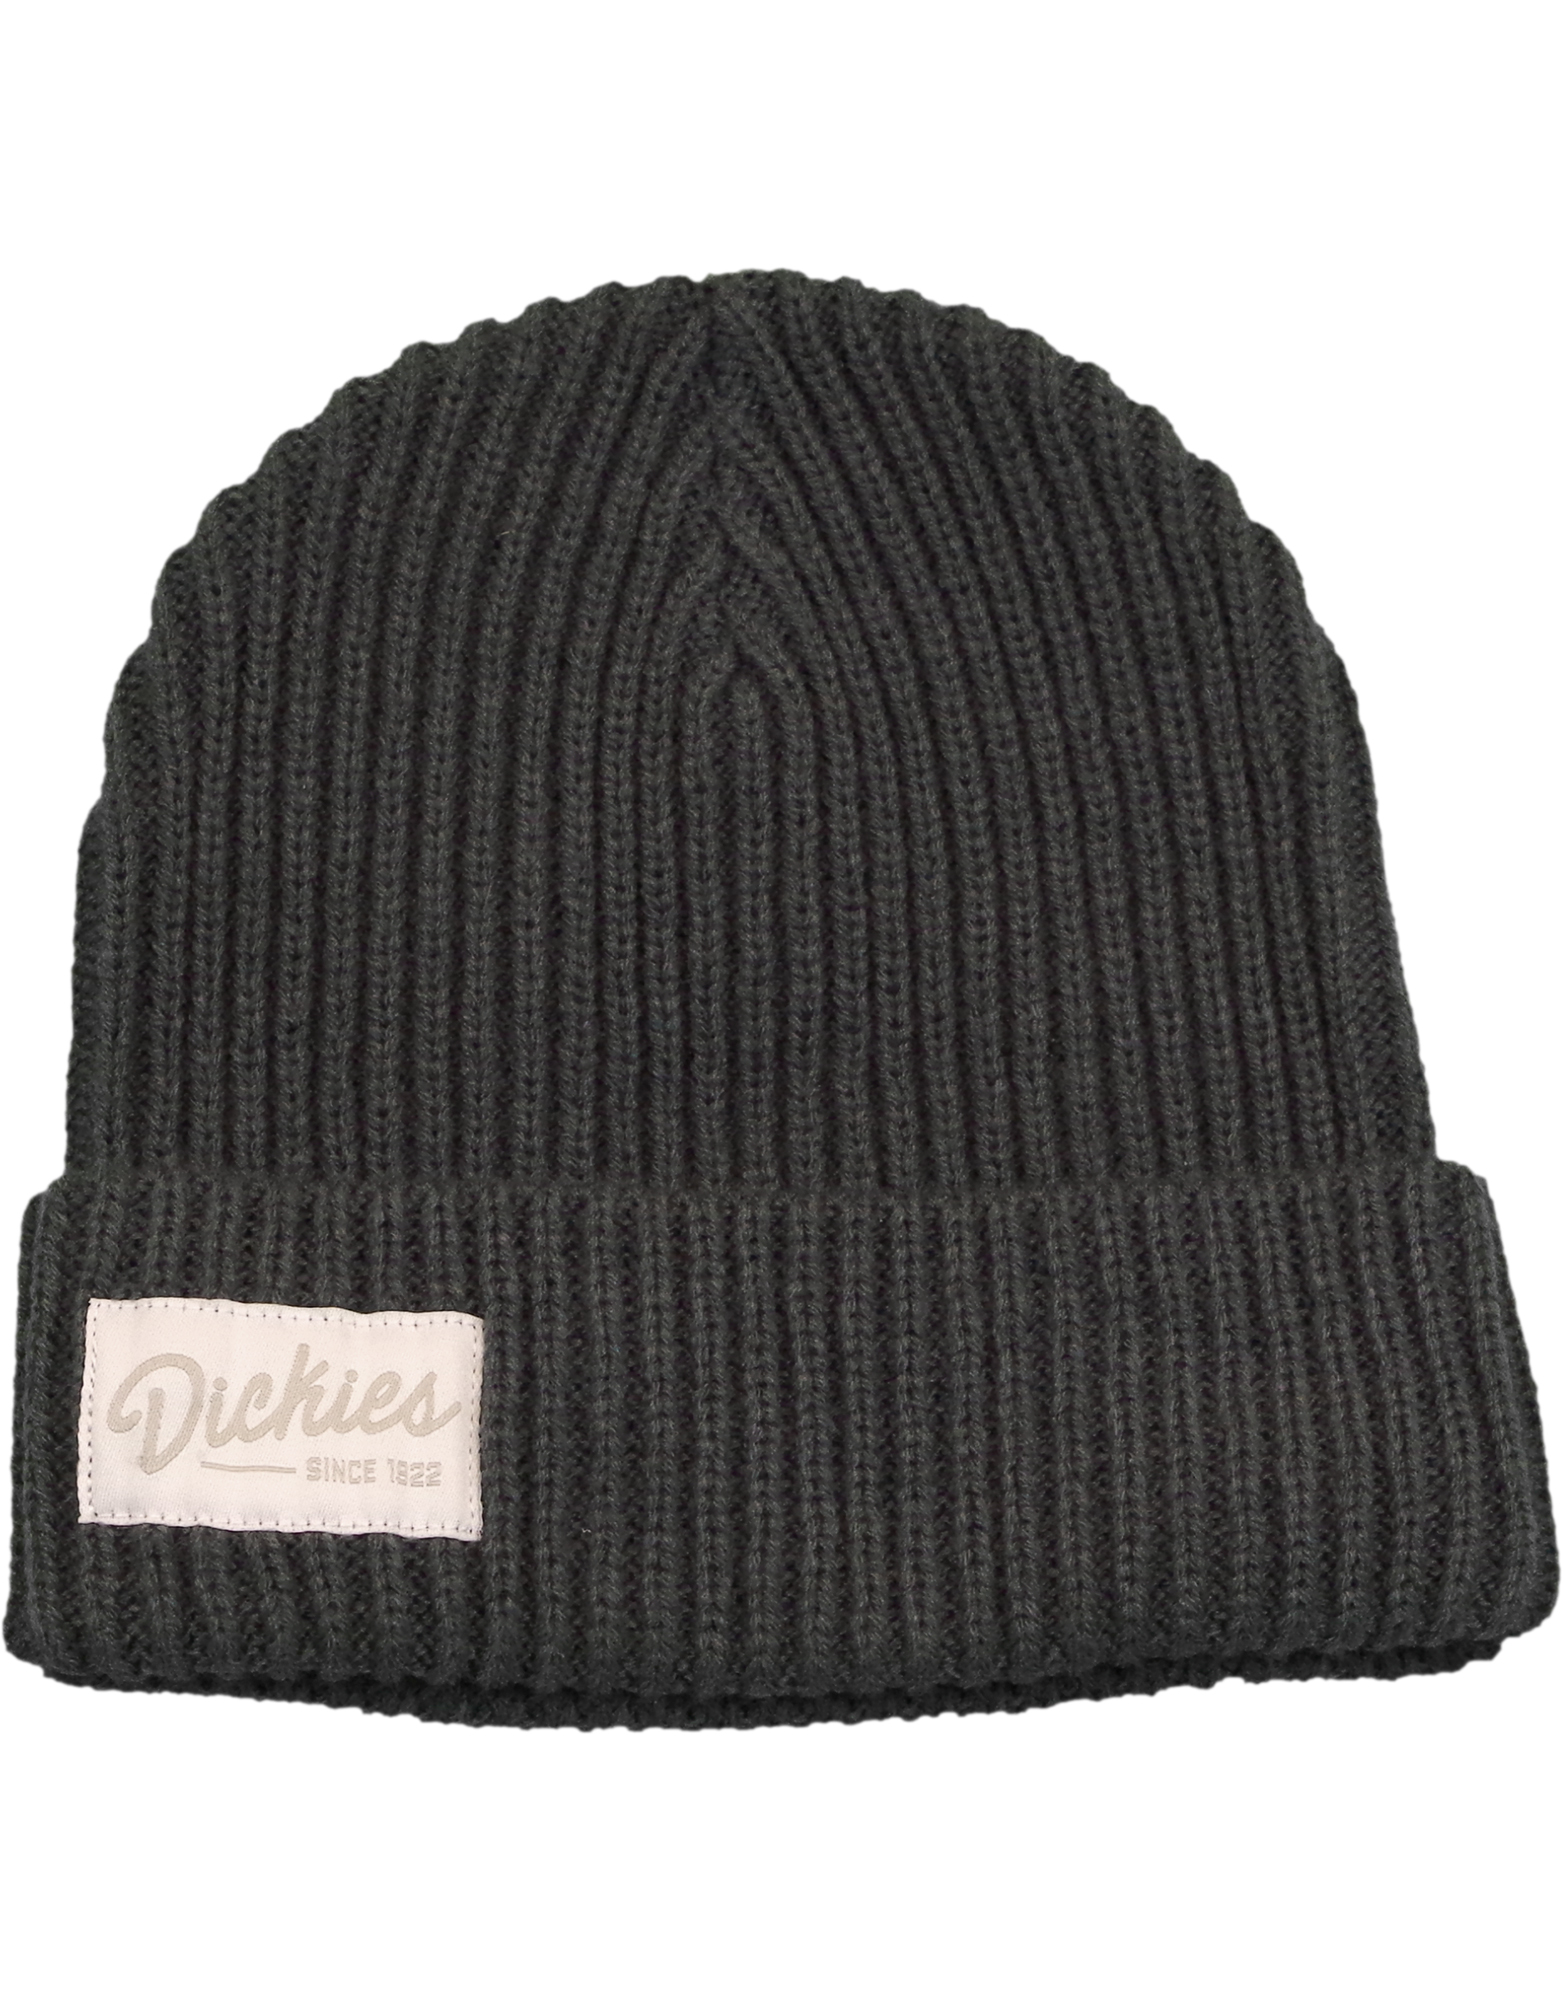 Chunky Knit Cuffed Beanie - Charcoal Gray (CH)